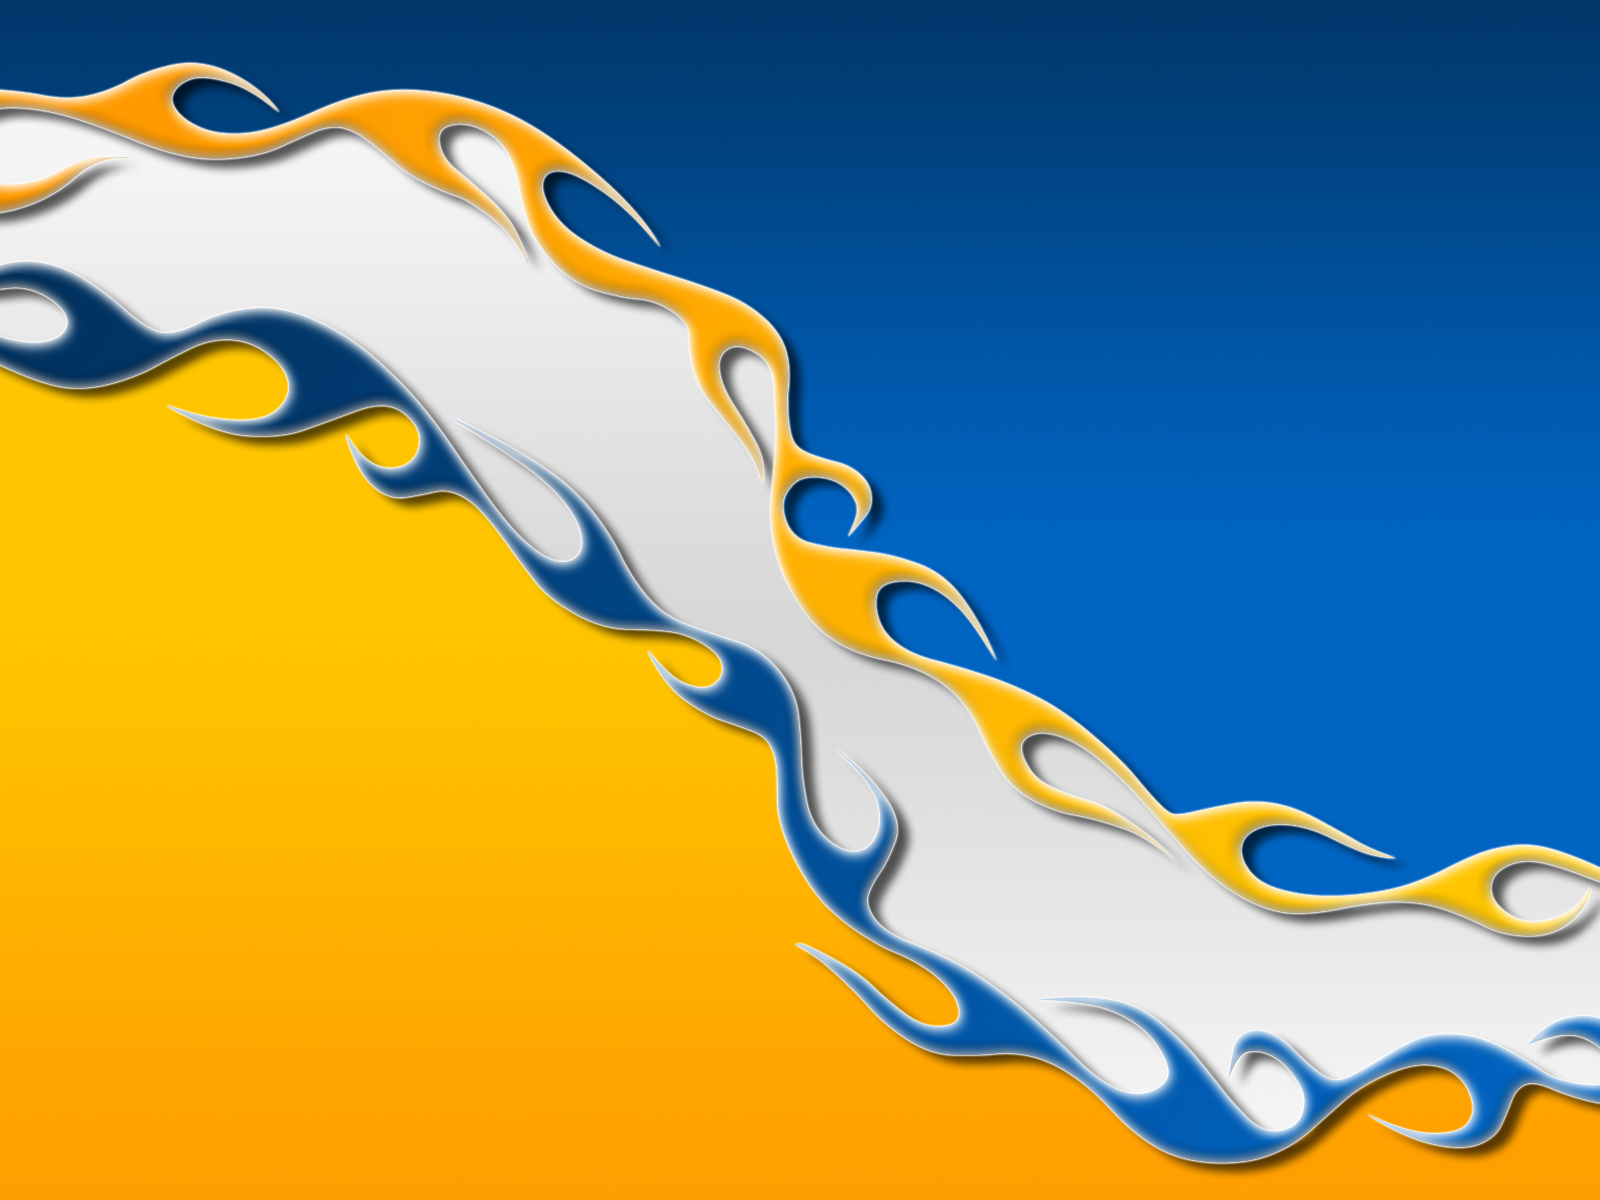 46+] Royal Blue and Gold Wallpaper on WallpaperSafari